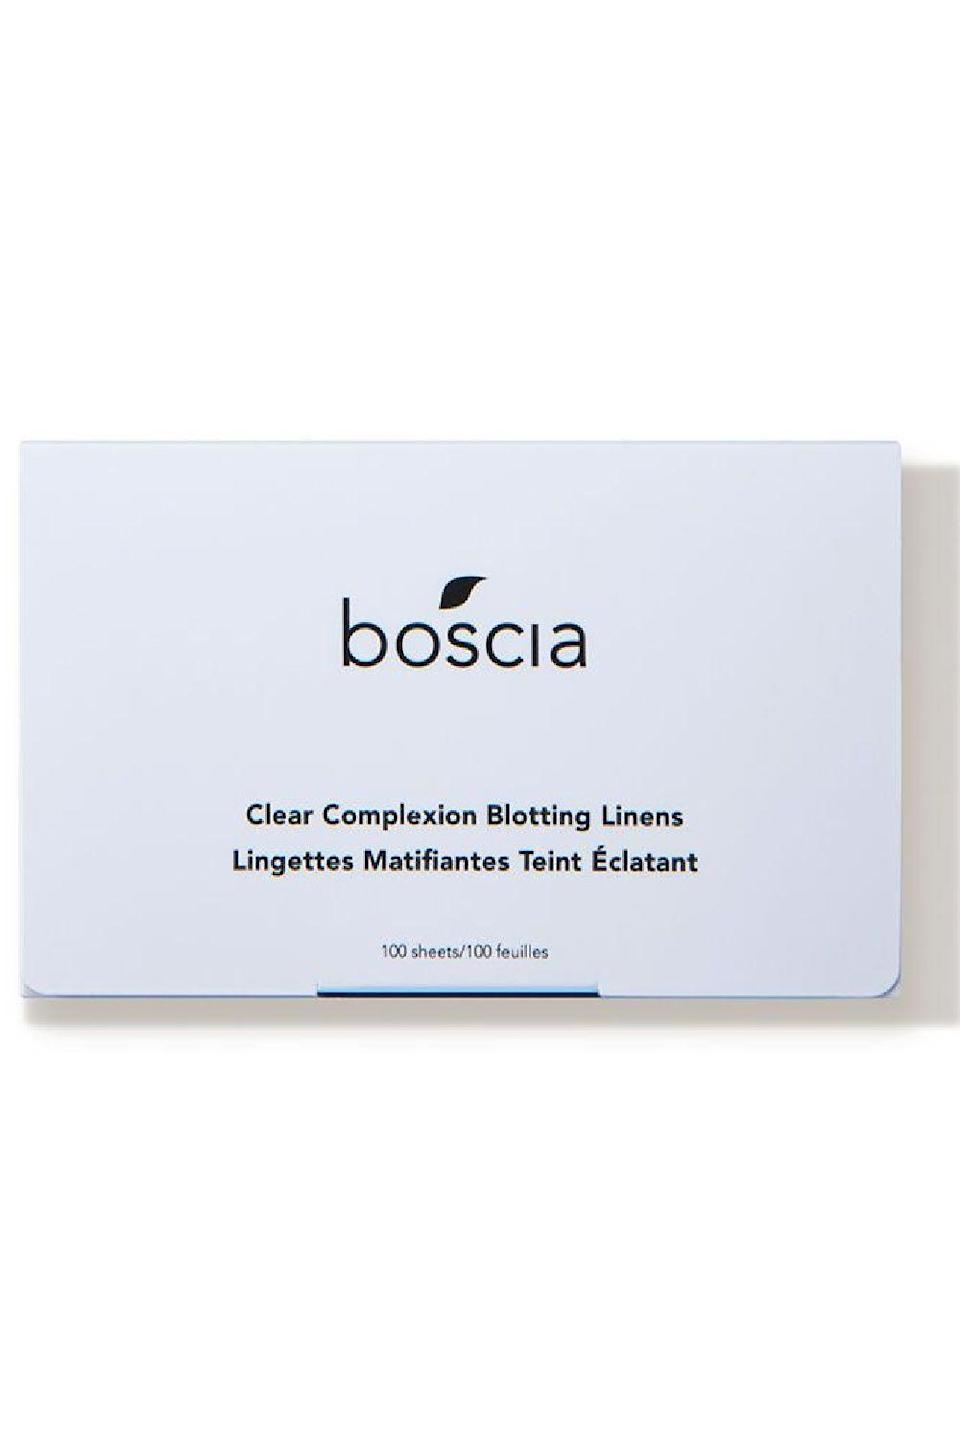 """<p><strong>boscia</strong></p><p>dermstore.com</p><p><strong>$10.00</strong></p><p><a href=""""https://go.redirectingat.com?id=74968X1596630&url=https%3A%2F%2Fwww.dermstore.com%2Fproduct_Clear%2BComplexion%2BBlotting%2BLinens%2B_76417.htm&sref=https%3A%2F%2Fwww.cosmopolitan.com%2Fstyle-beauty%2Fbeauty%2Fg35020776%2Fbest-oil-blotting-paper-sheets%2F"""" rel=""""nofollow noopener"""" target=""""_blank"""" data-ylk=""""slk:Shop Now"""" class=""""link rapid-noclick-resp"""">Shop Now</a></p><p>Not only do you get a ton of sheets in this pack (100, to be specific), but each oil blotting paper is infused with willow bark, an ingredient that <strong>helps to <a href=""""https://www.cosmopolitan.com/style-beauty/beauty/a29687994/clear-skin-tips/"""" rel=""""nofollow noopener"""" target=""""_blank"""" data-ylk=""""slk:prevent zits from popping up on your face"""" class=""""link rapid-noclick-resp"""">prevent zits from popping up on your face</a></strong> while also fading those dark spots your previous breakout left behind.<br></p>"""